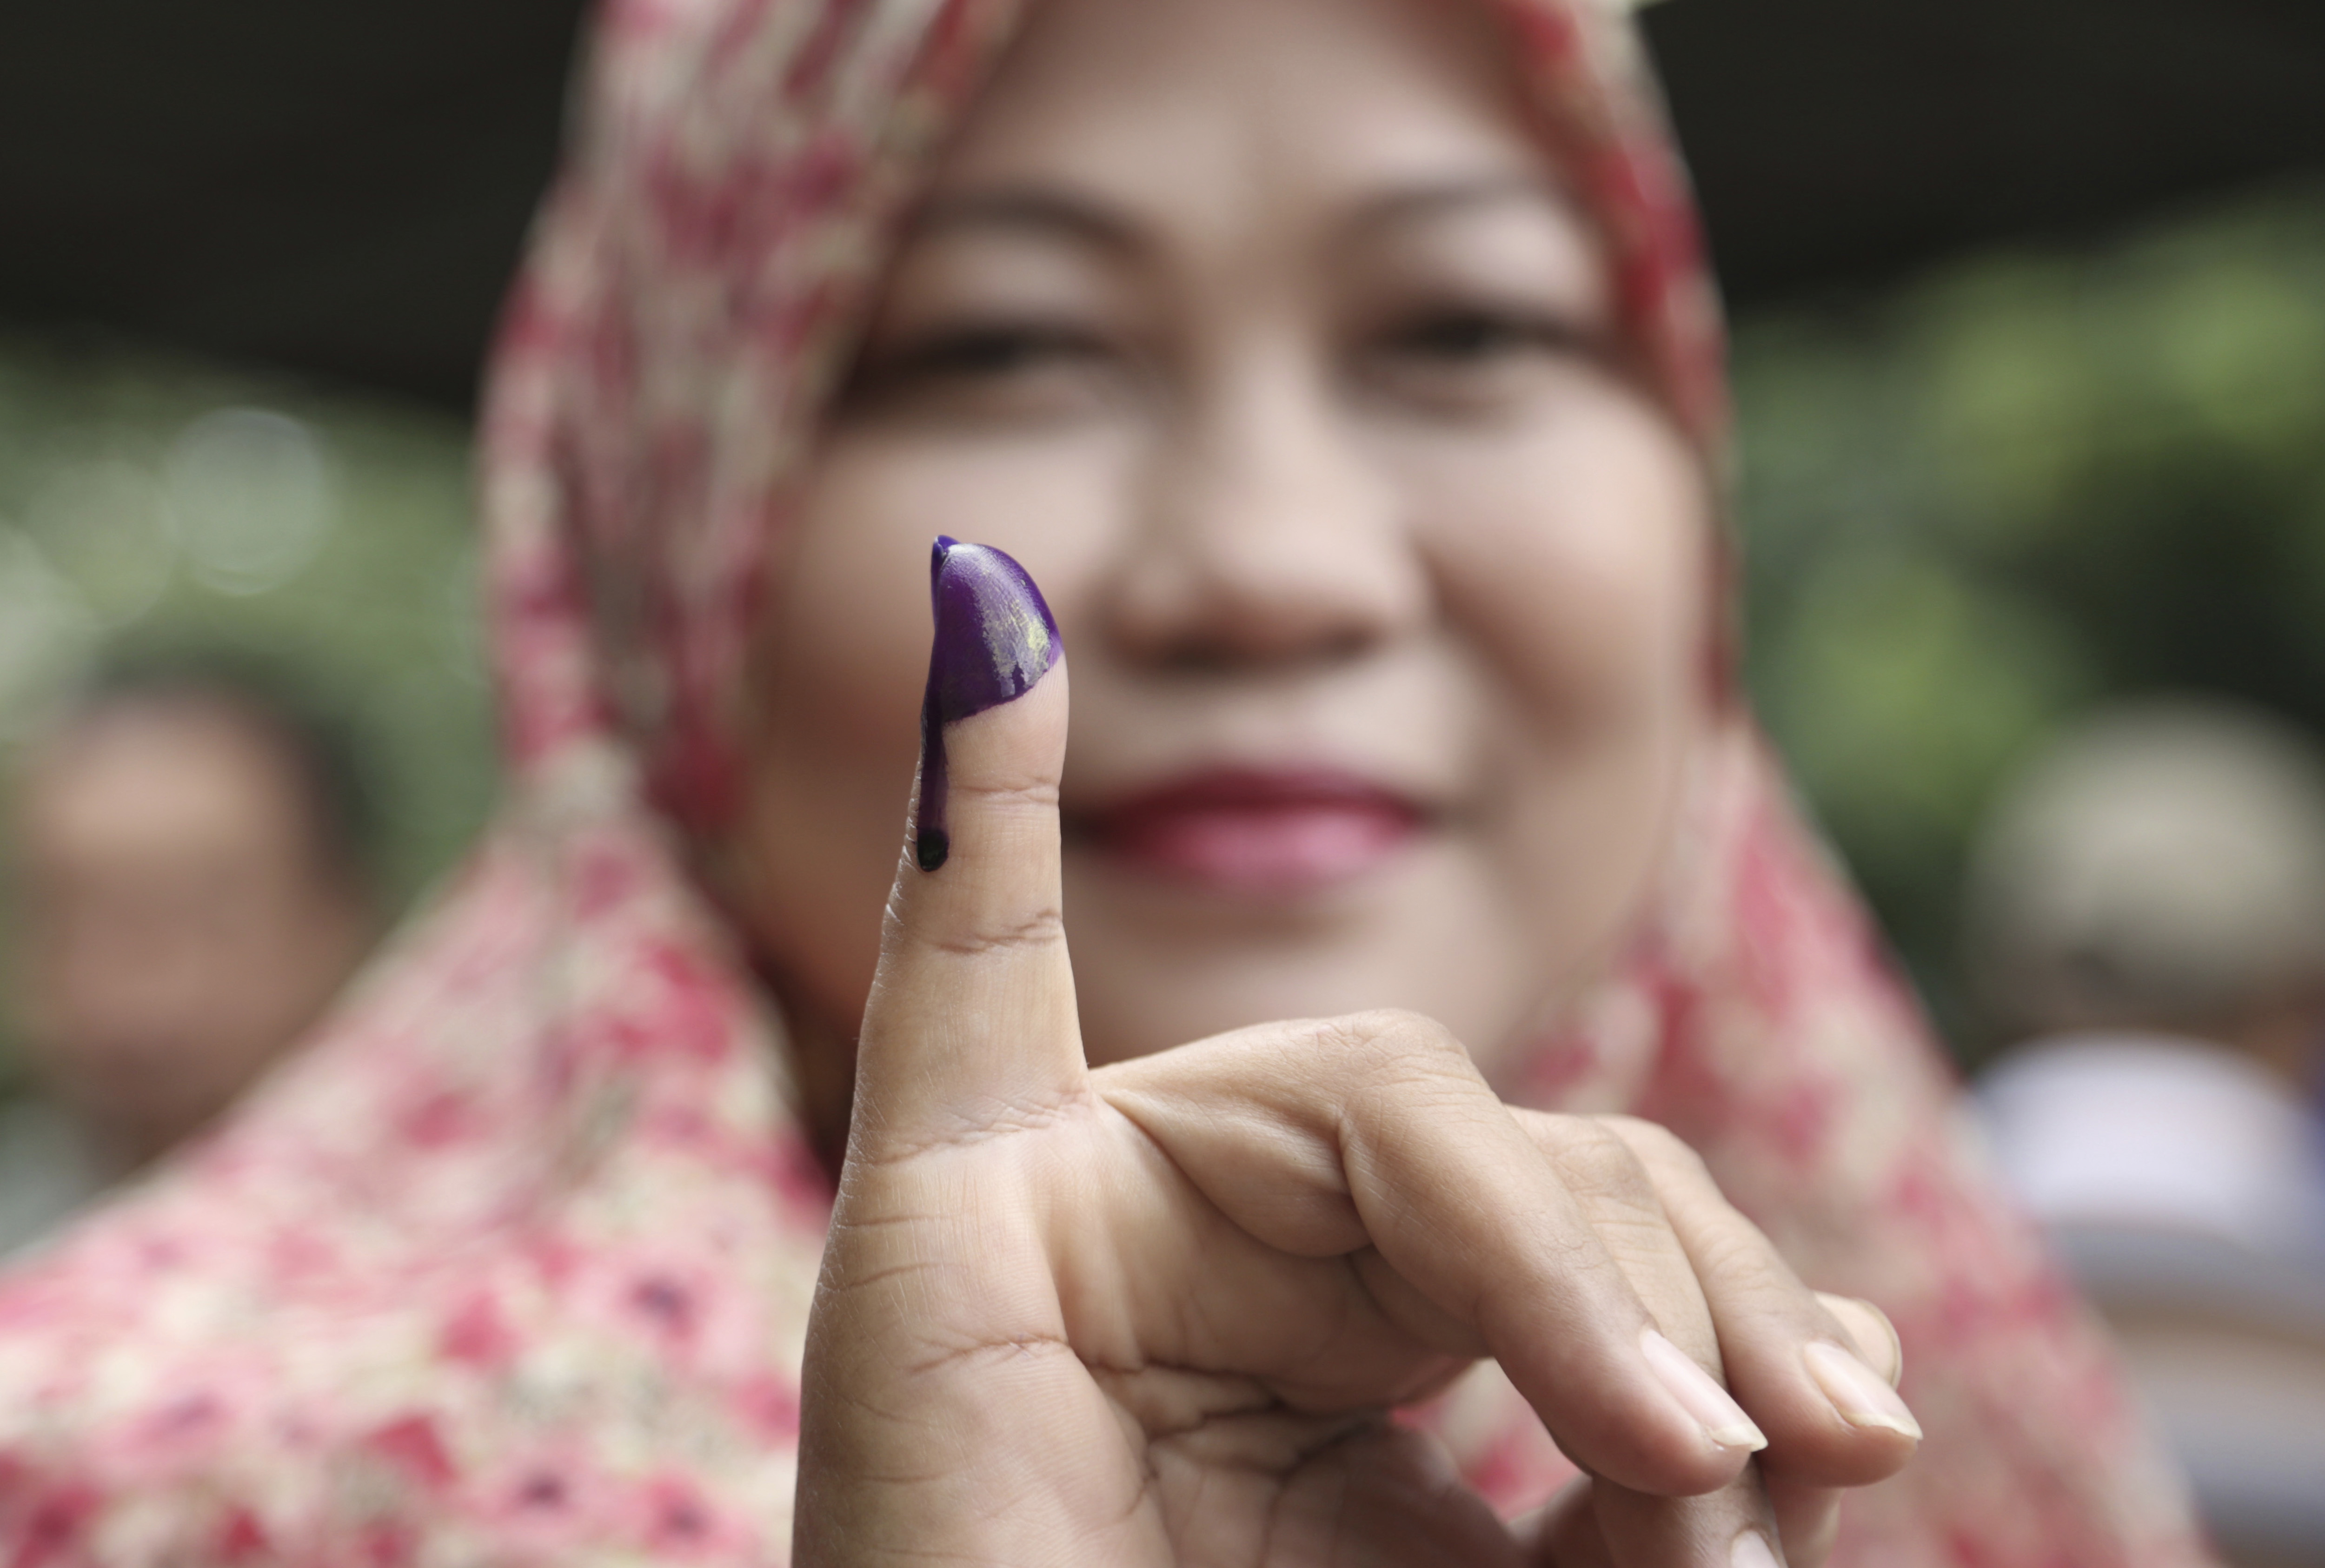 A Muslim woman shows her ink-stained finger after voting in the gubernatorial election in Jakarta on Feb. 15, 2017